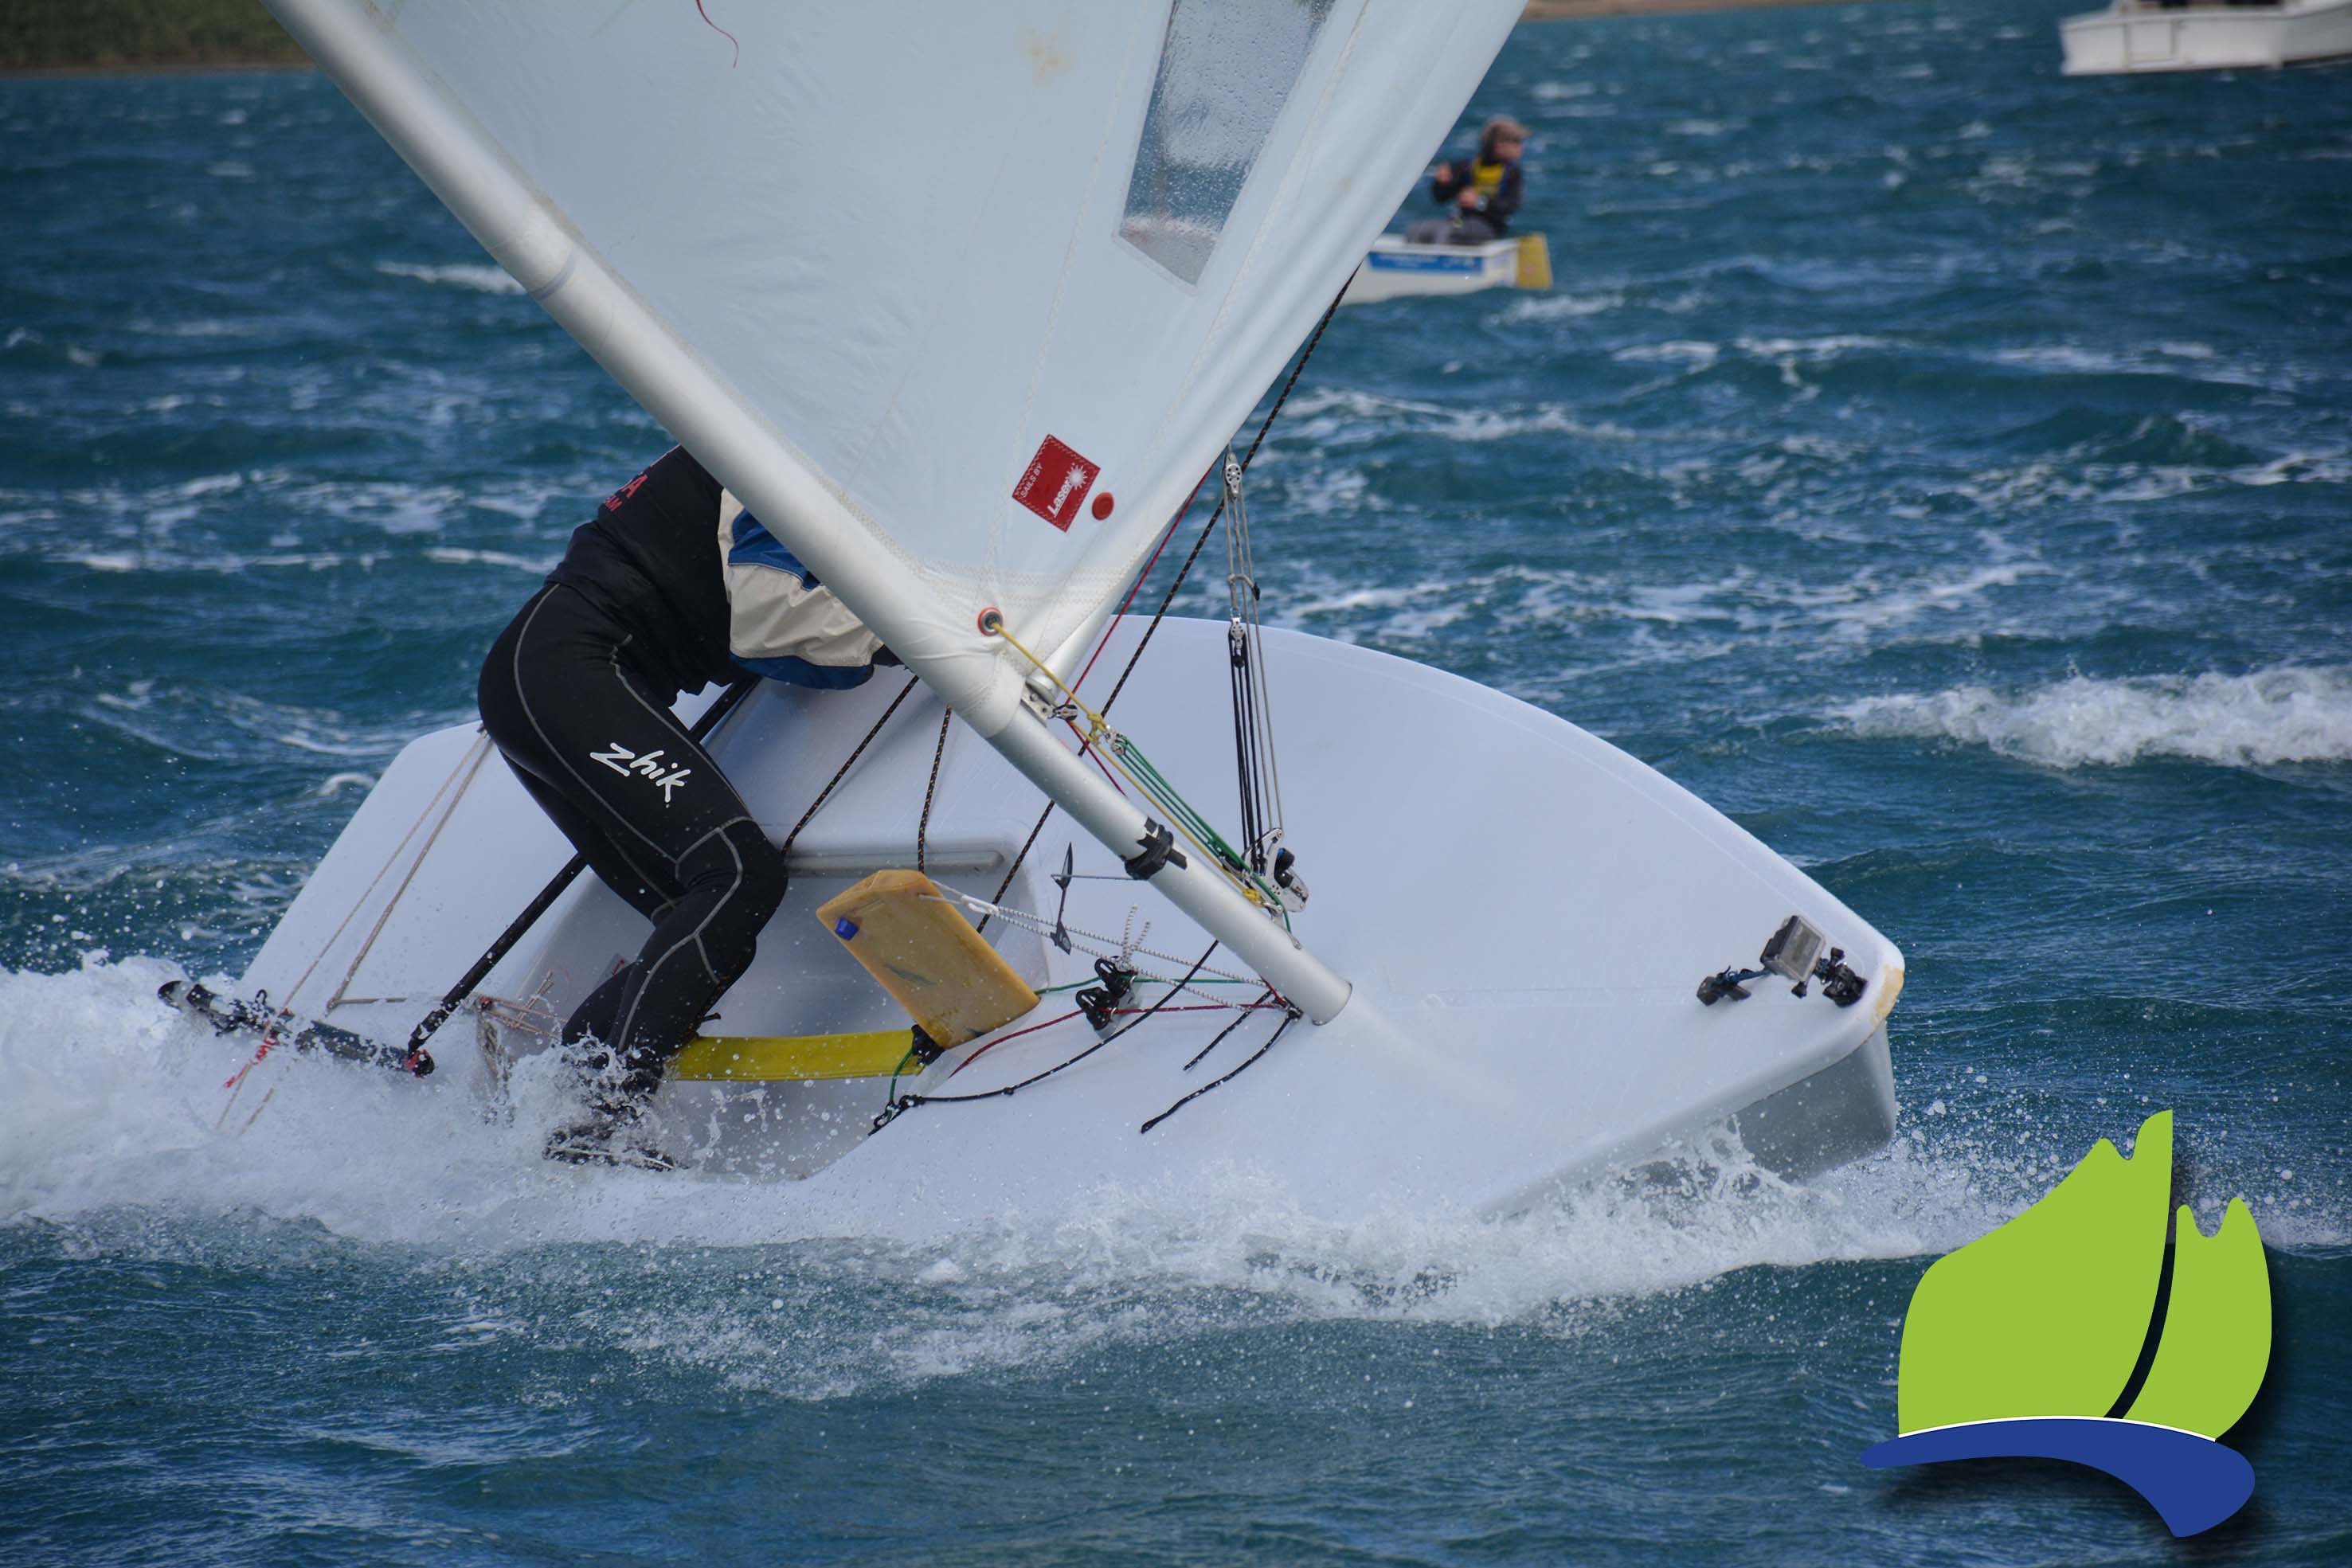 Things got hectic for laser sailor Sarah Dredge as the breeze picked up on the Sunday.